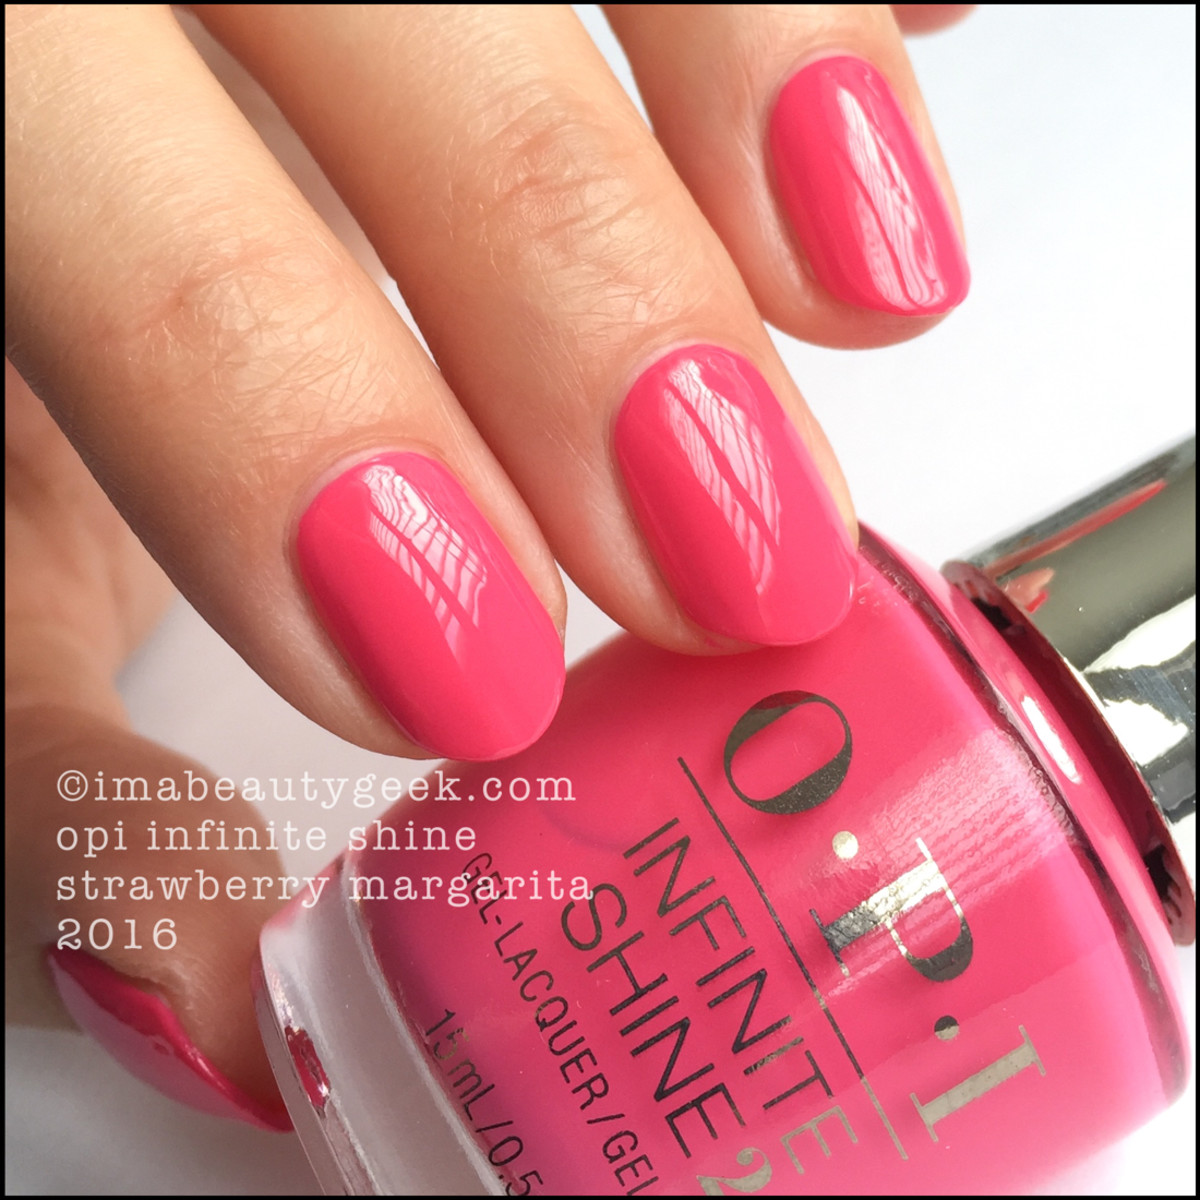 OPI Infinite Shine Strawberry Margarita_OPI Infinite Shine Iconic Collection 2016